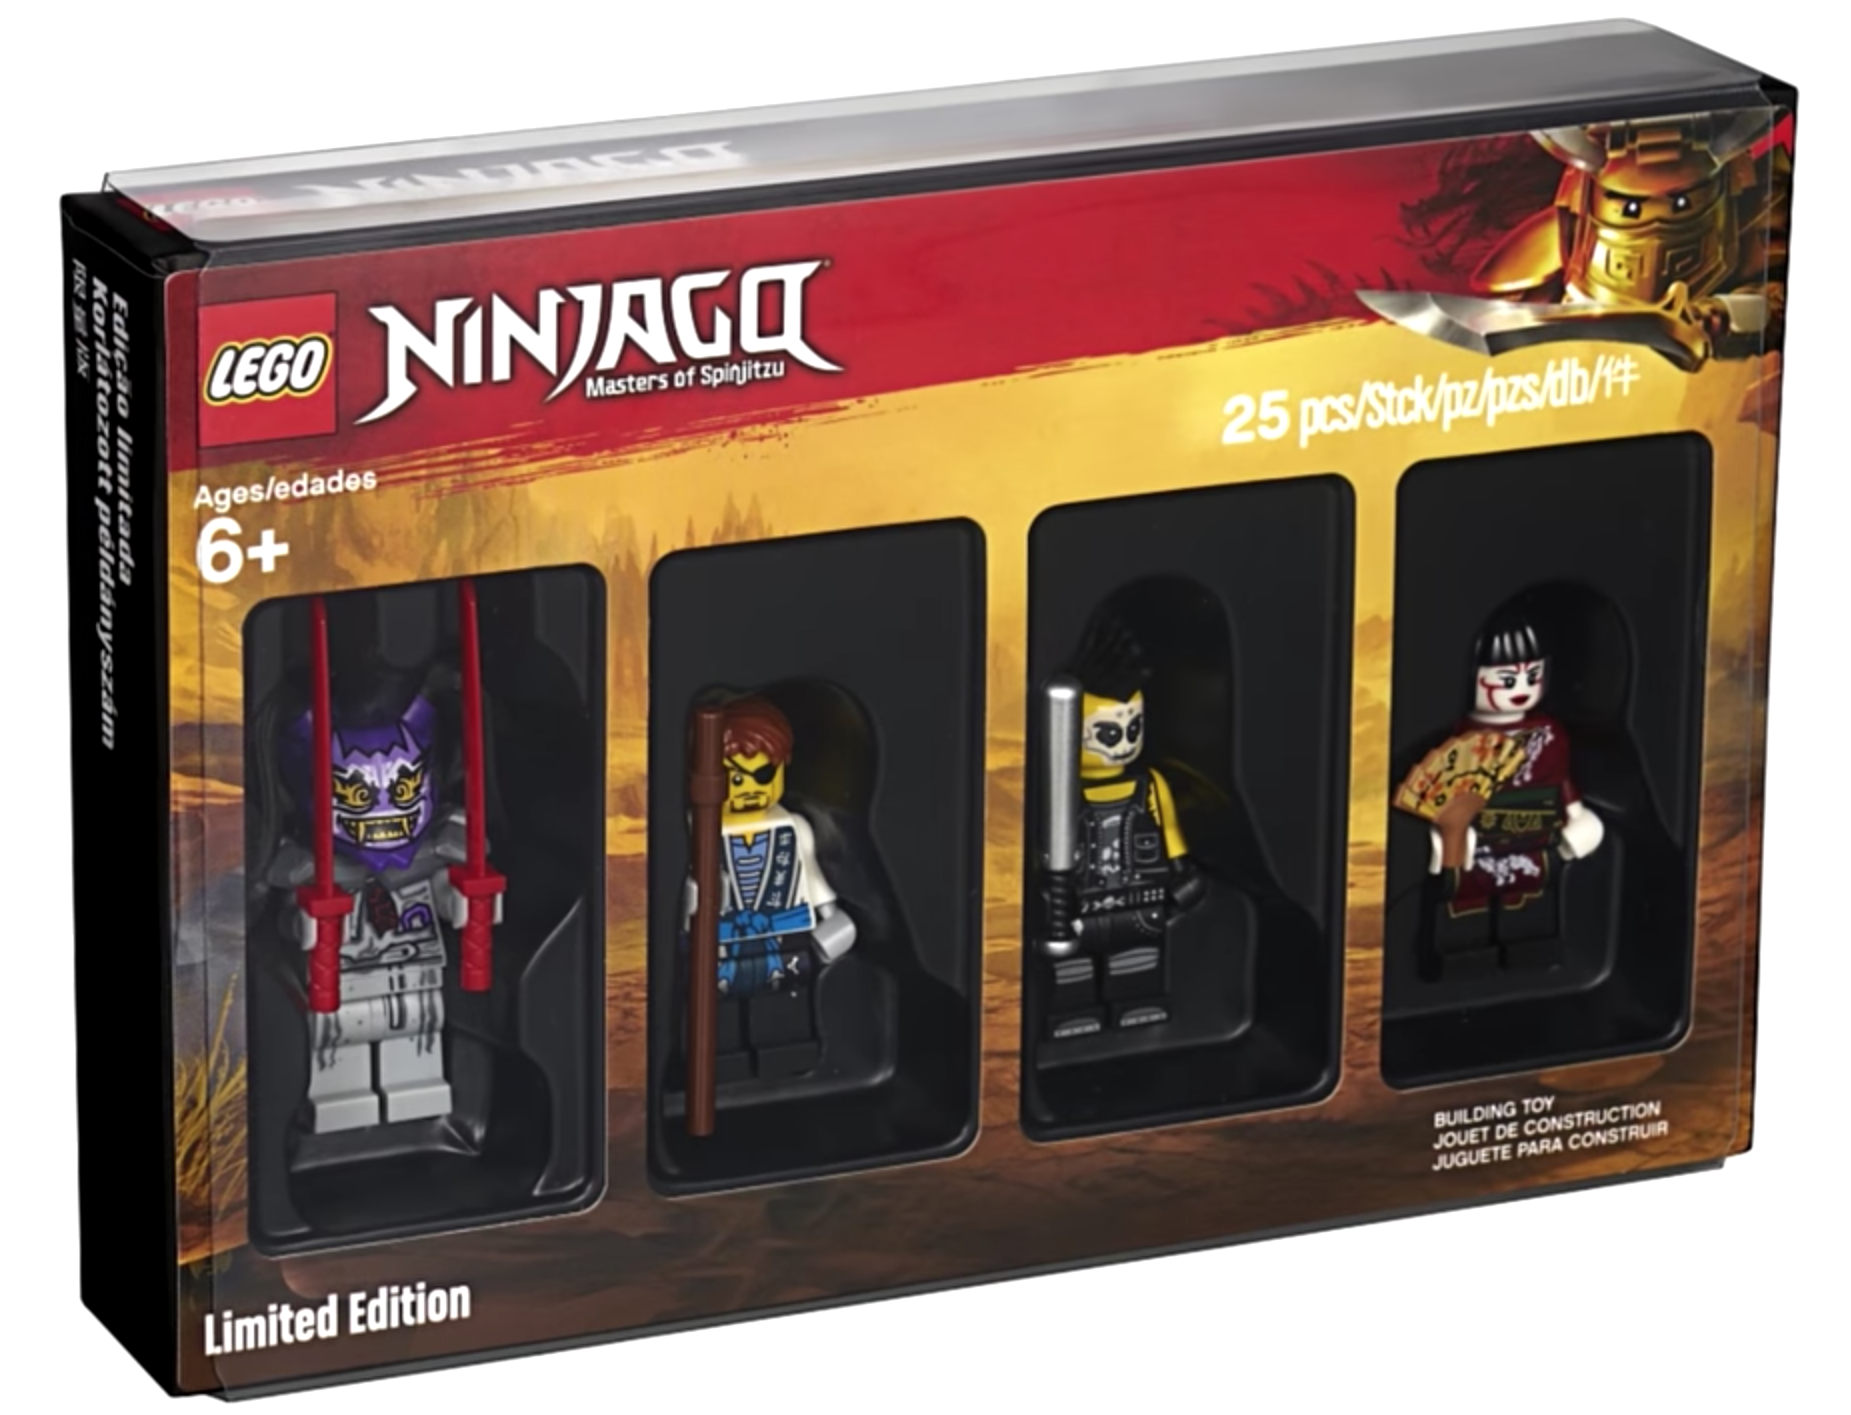 5005257 Ninjago Minifigure Collection Ninjago Wiki Fandom